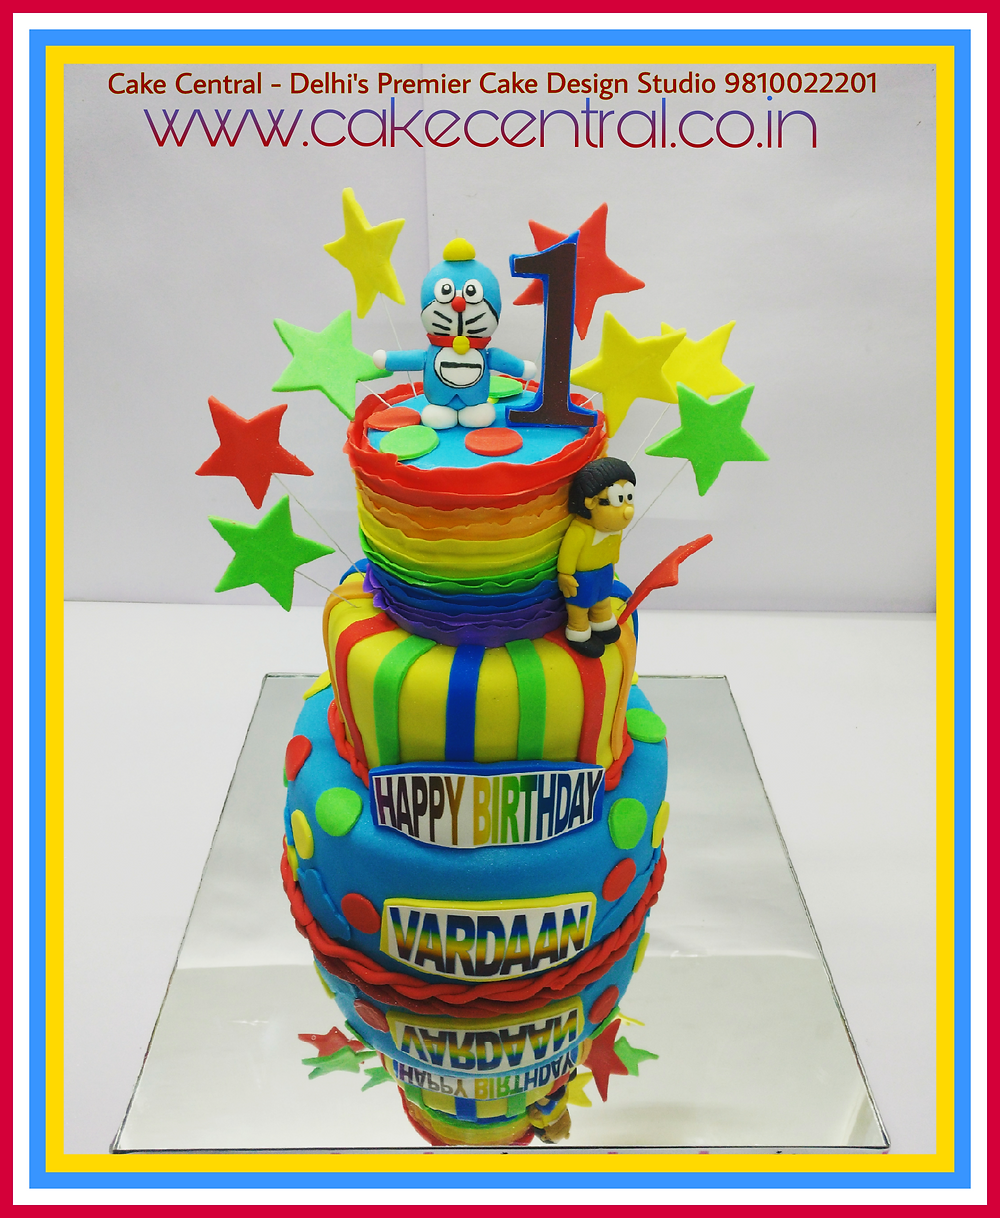 Designer First Birthday Doraemon Birthday Cake , Fondant themed Doraemon Cake by Cake Central Delhi . New Delhi